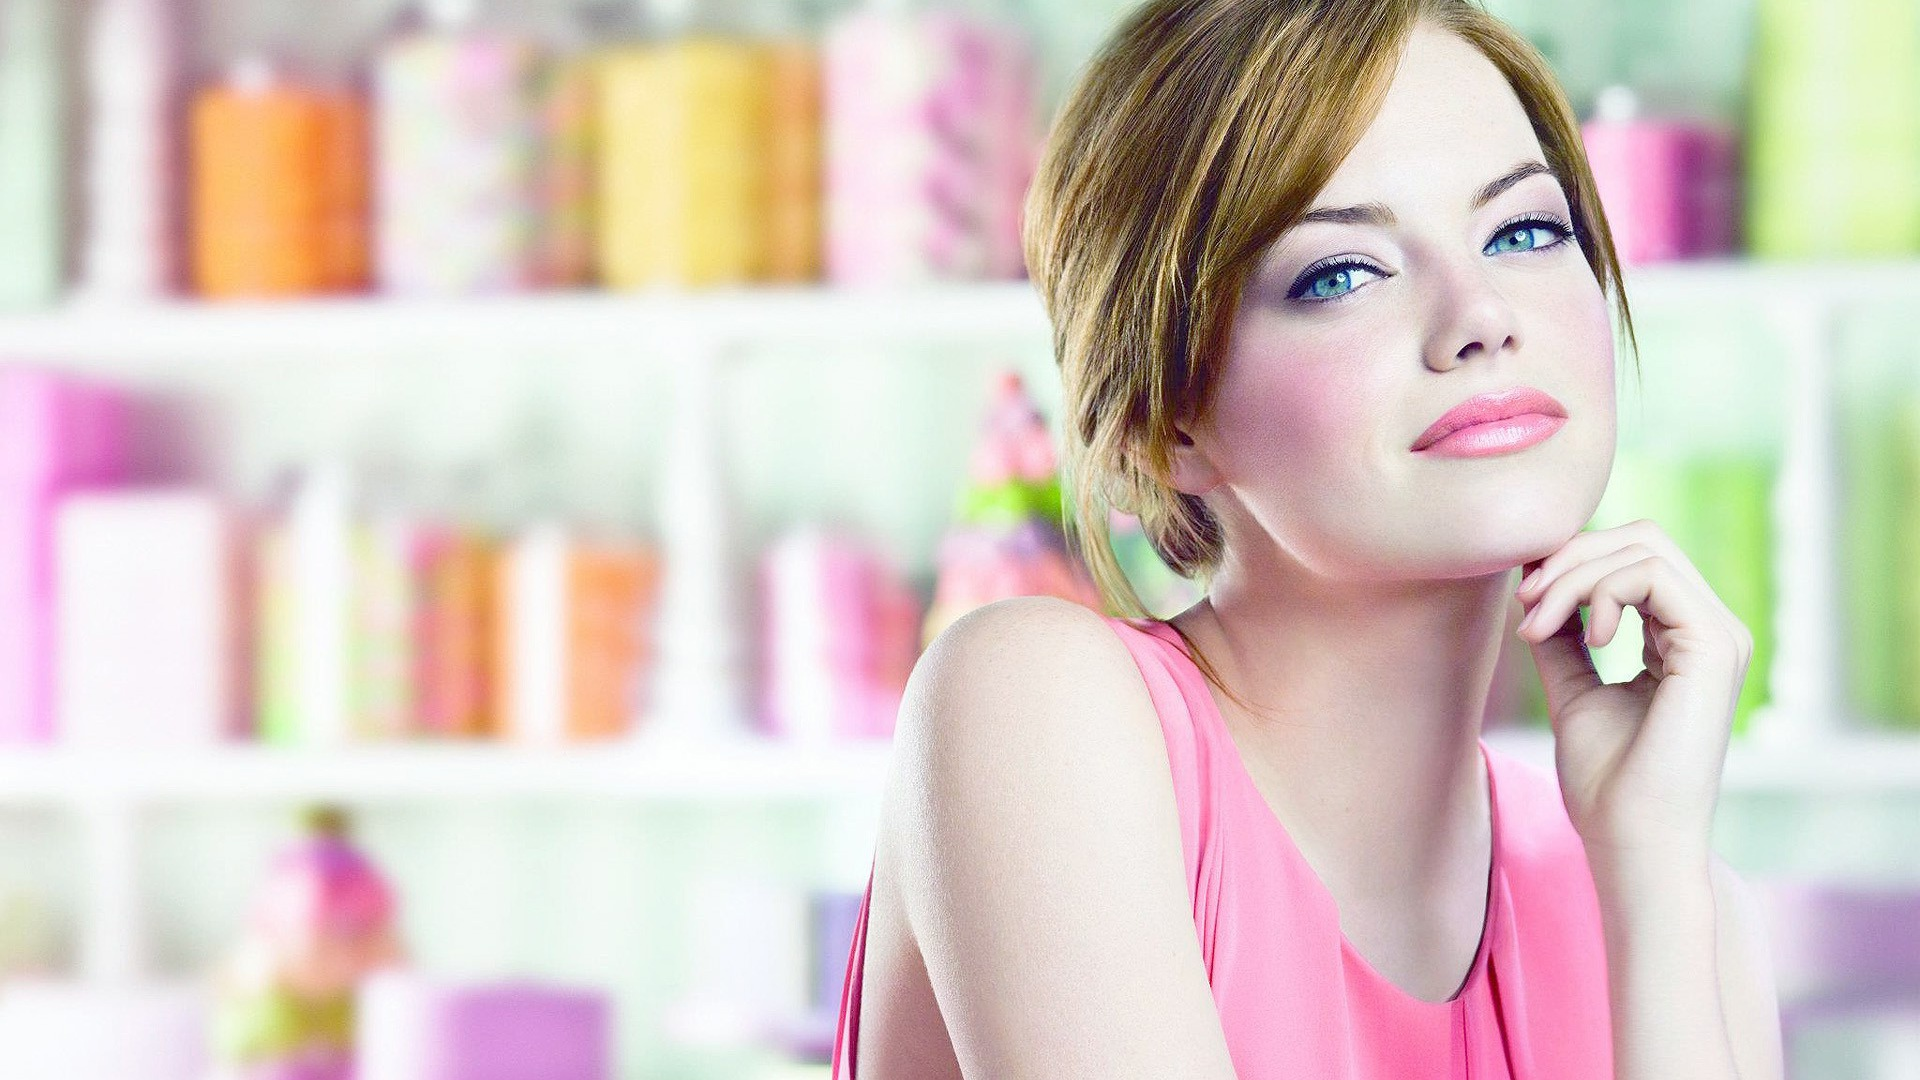 emma stone wallpapers hd a2